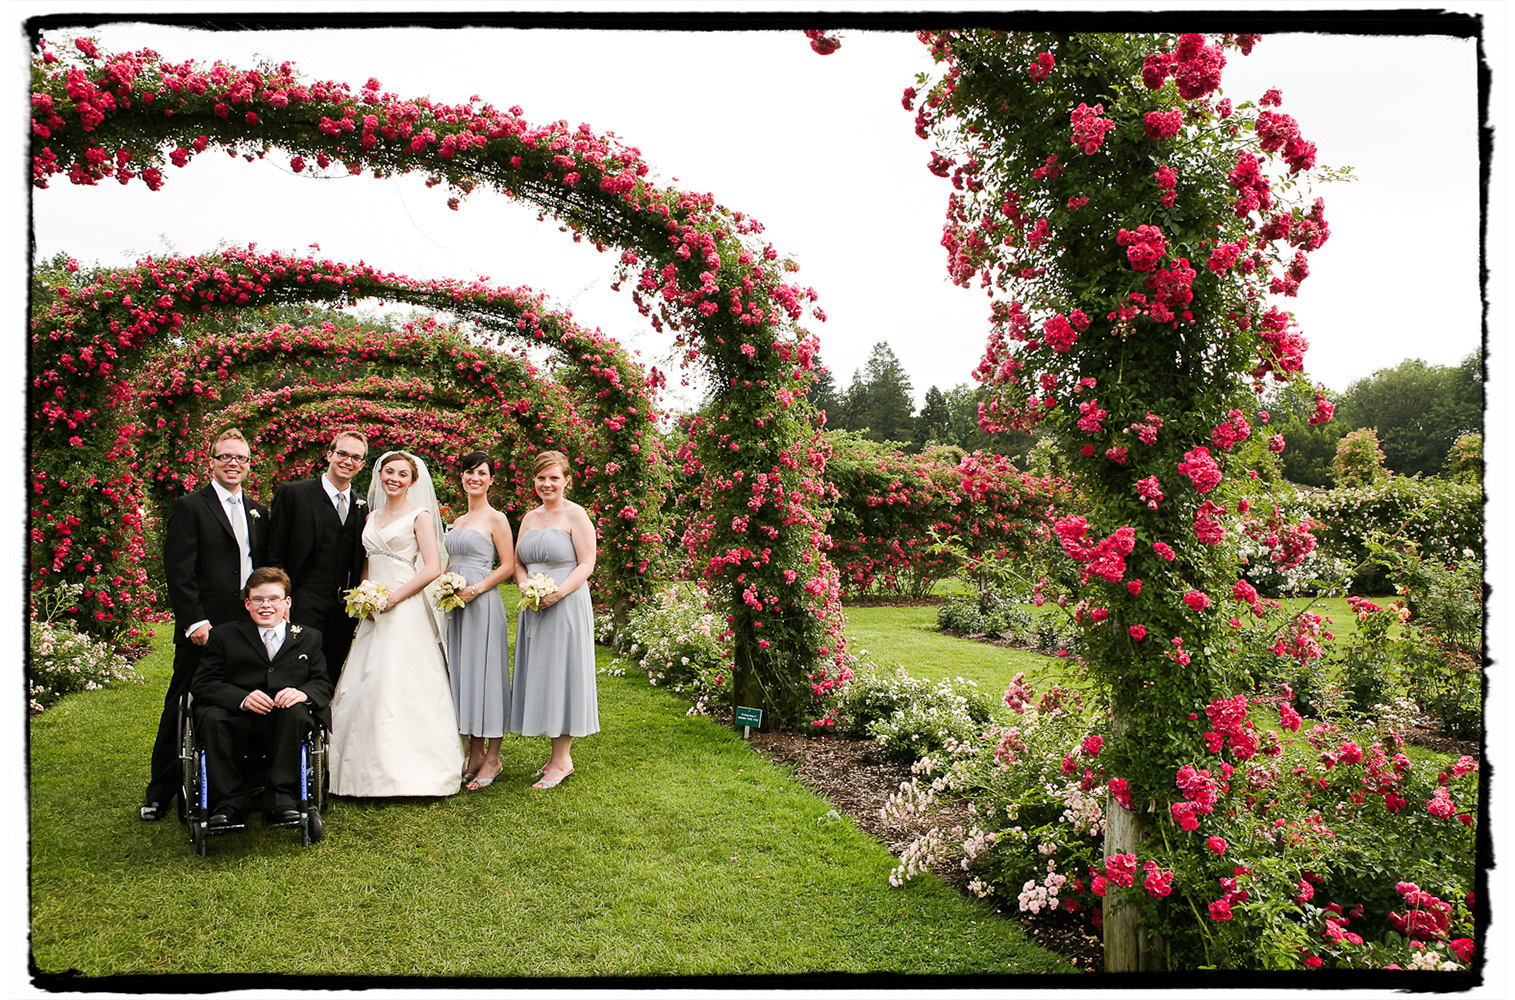 The Hartford Botanical Garden provided the perfect scenery for this beautiful wedding party portrait.